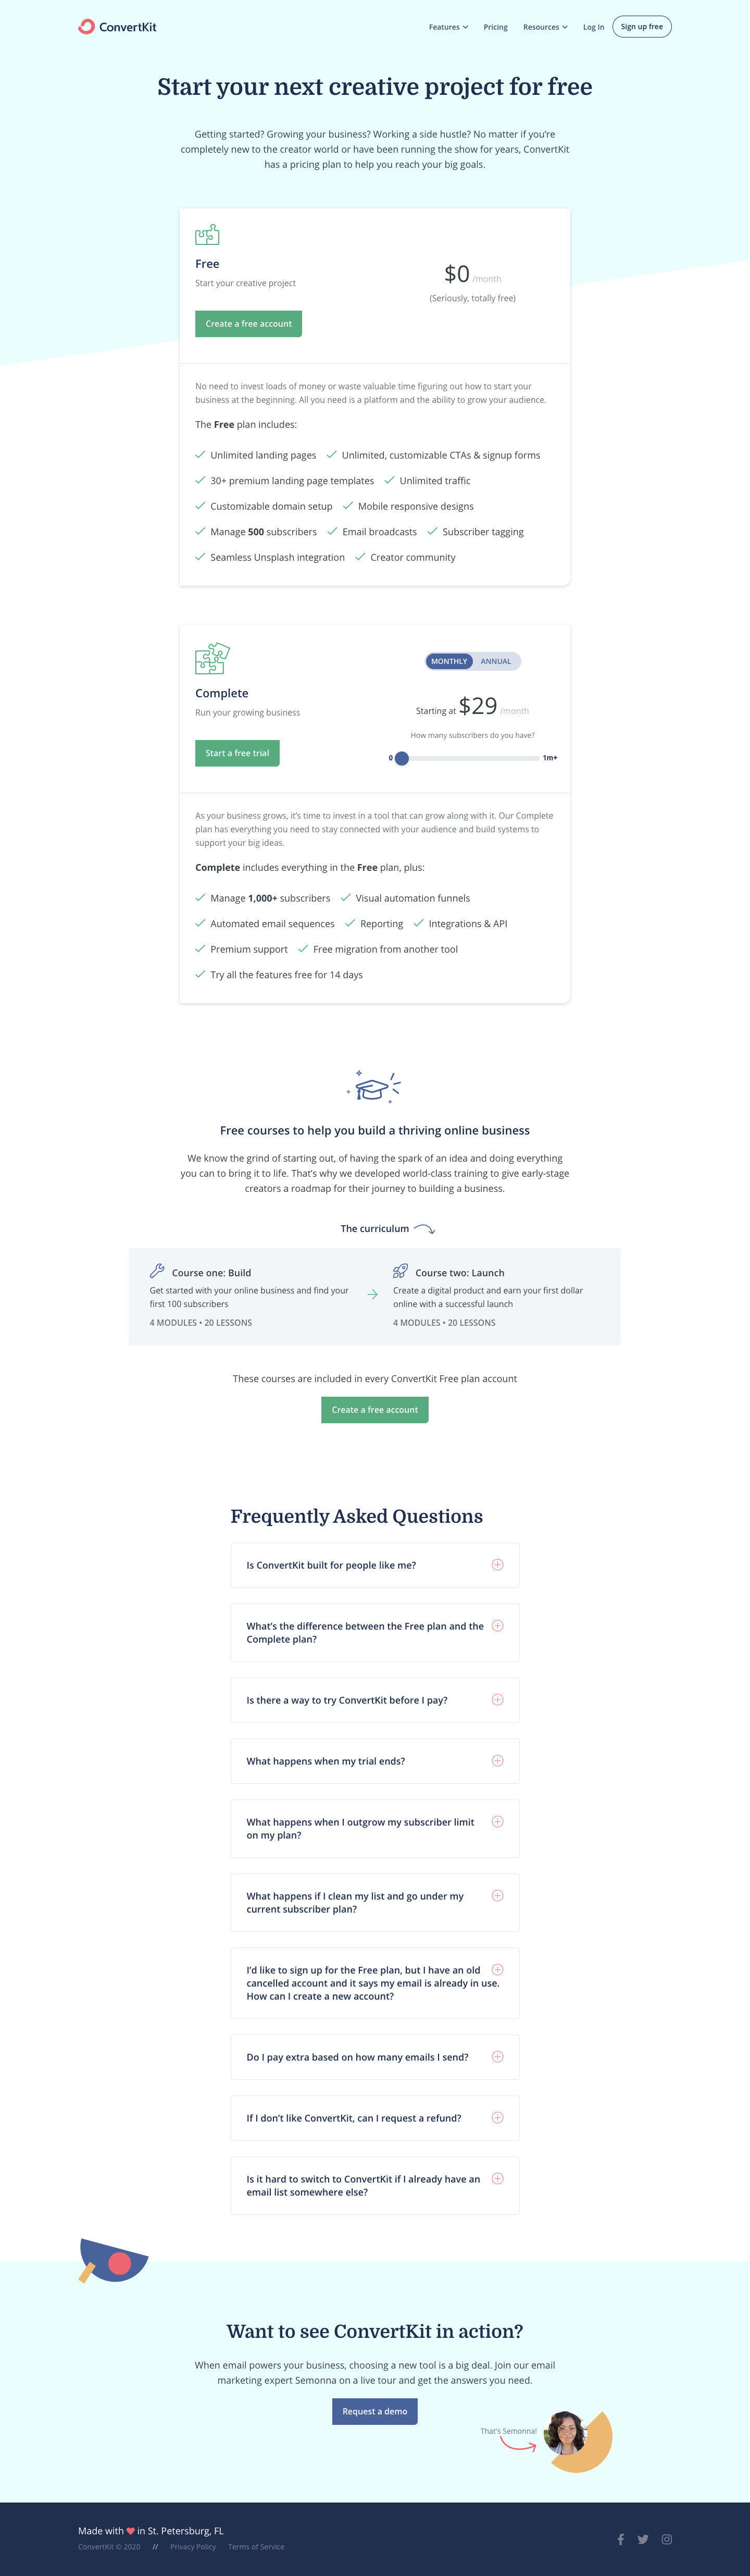 ConvertKit Pricing Page